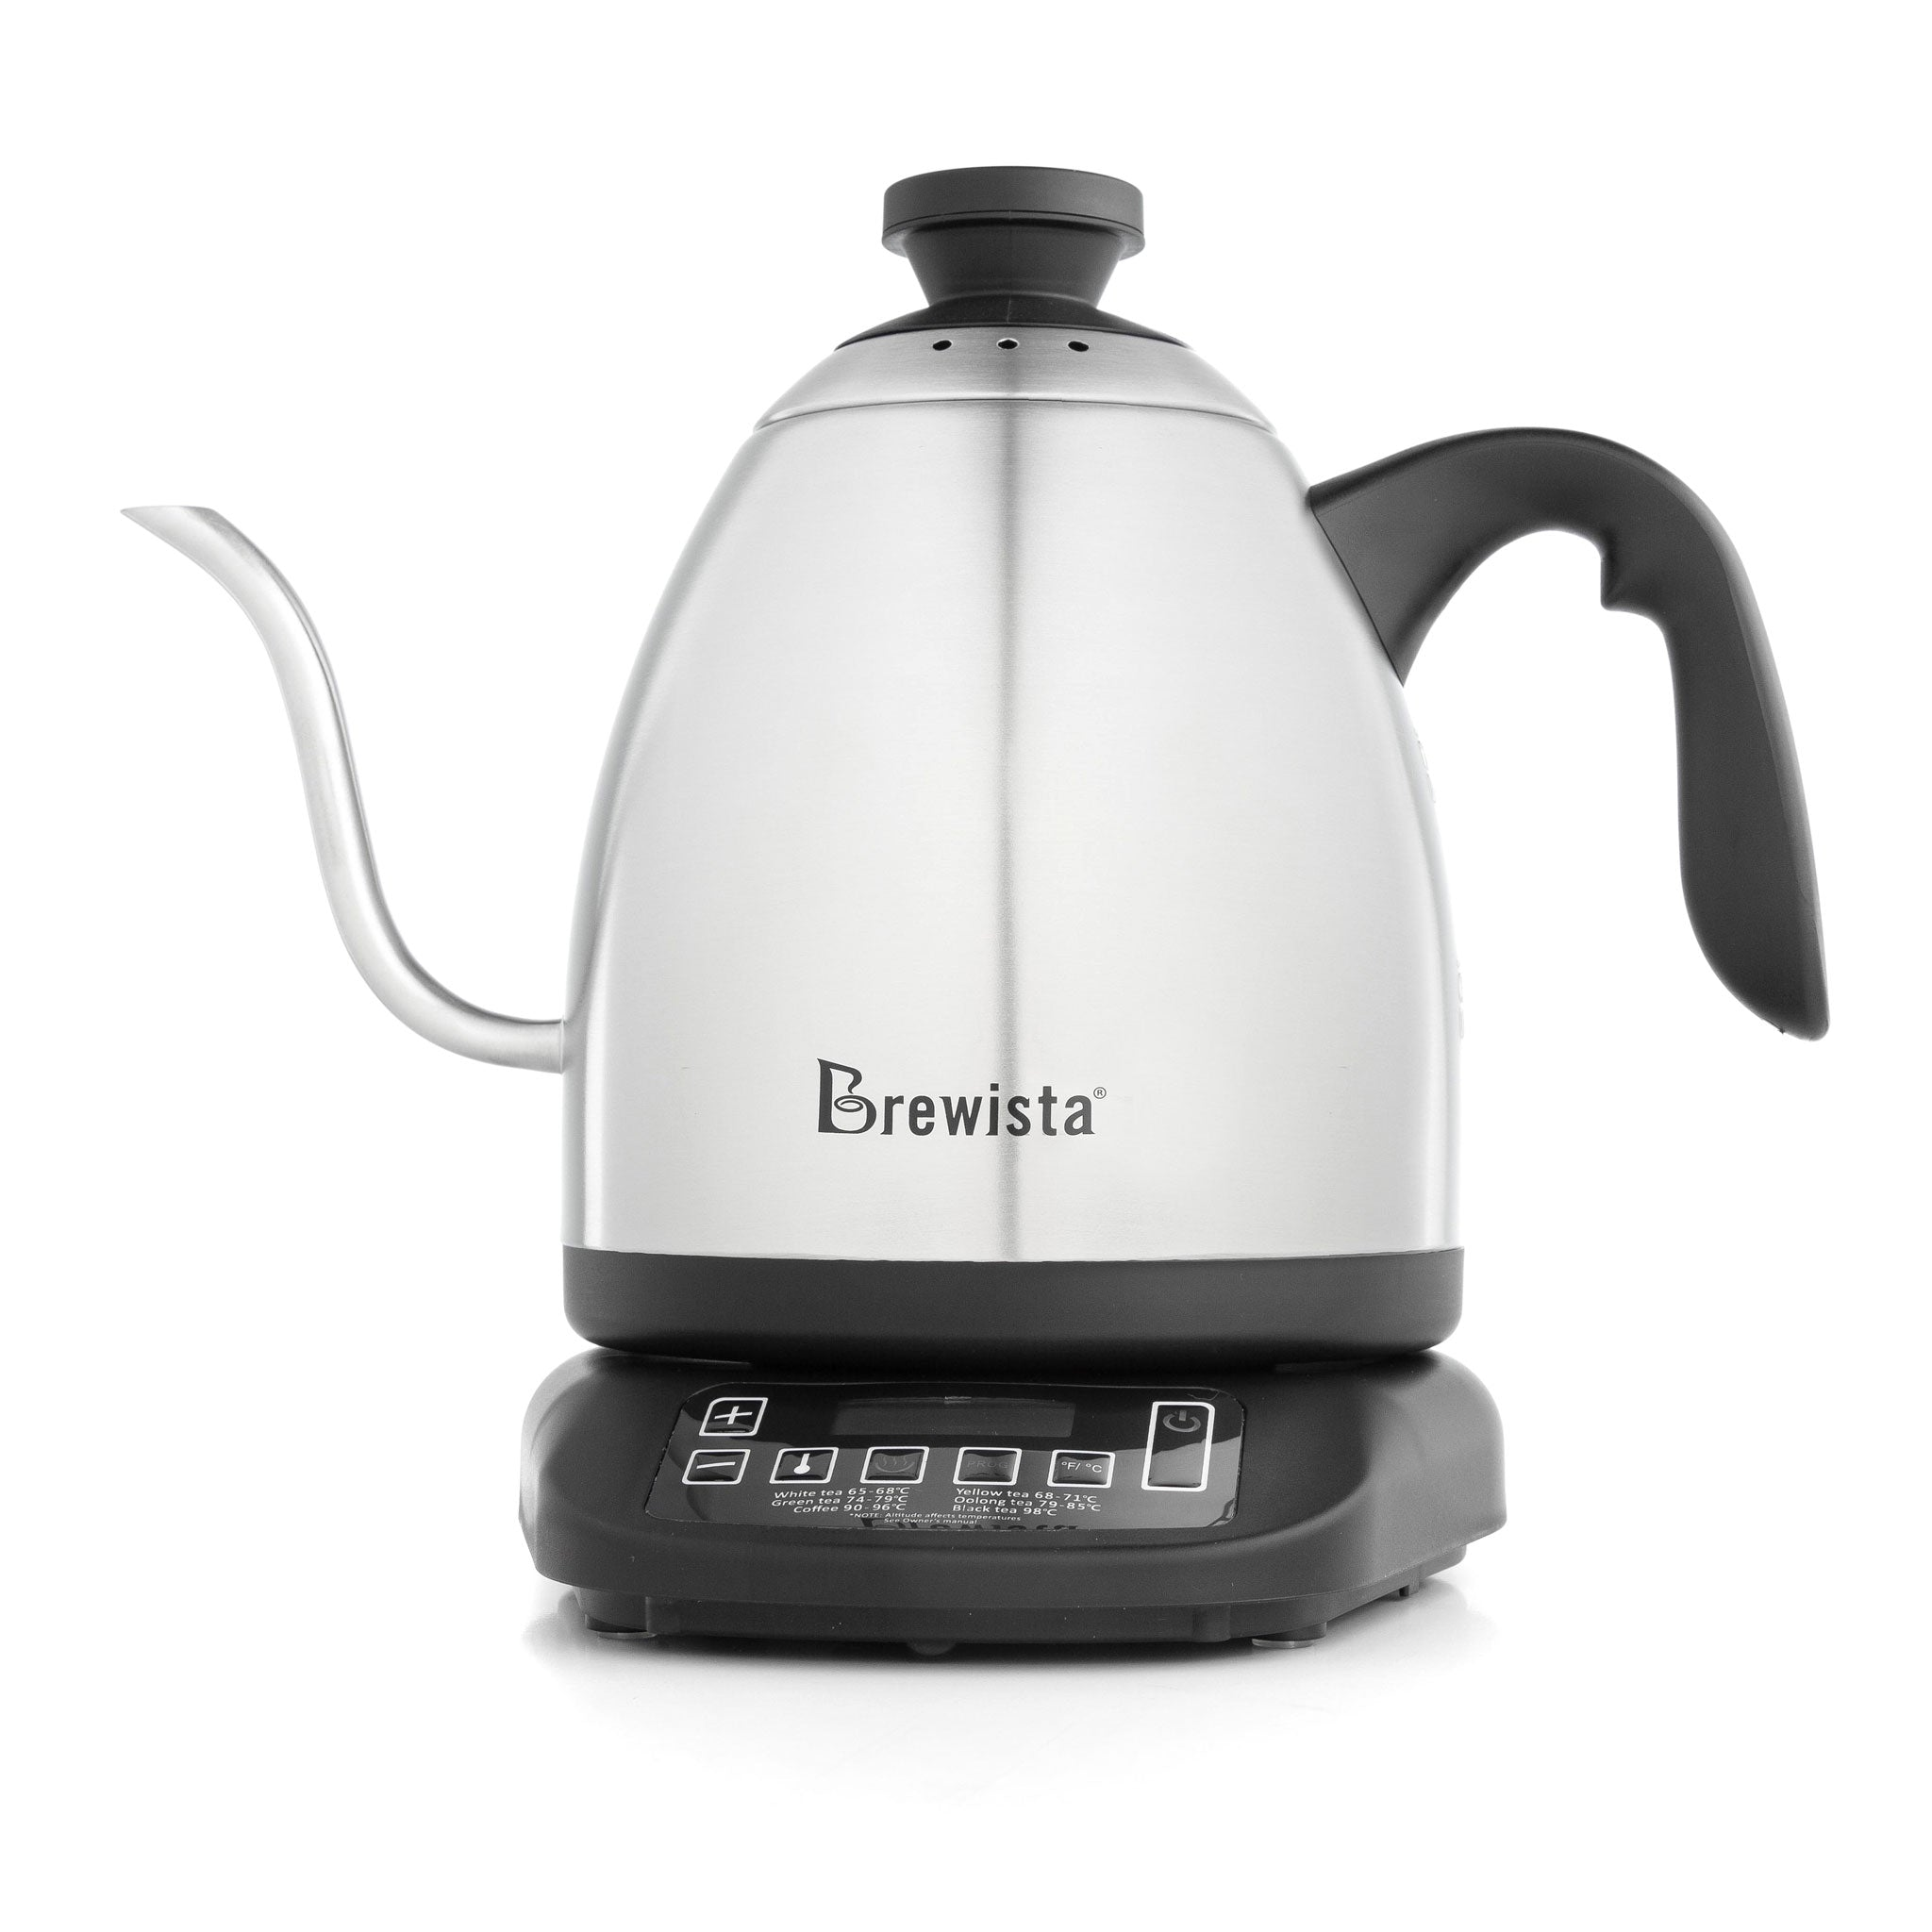 Brewista Smart Pour Variable Temperature Kettle 1.2L